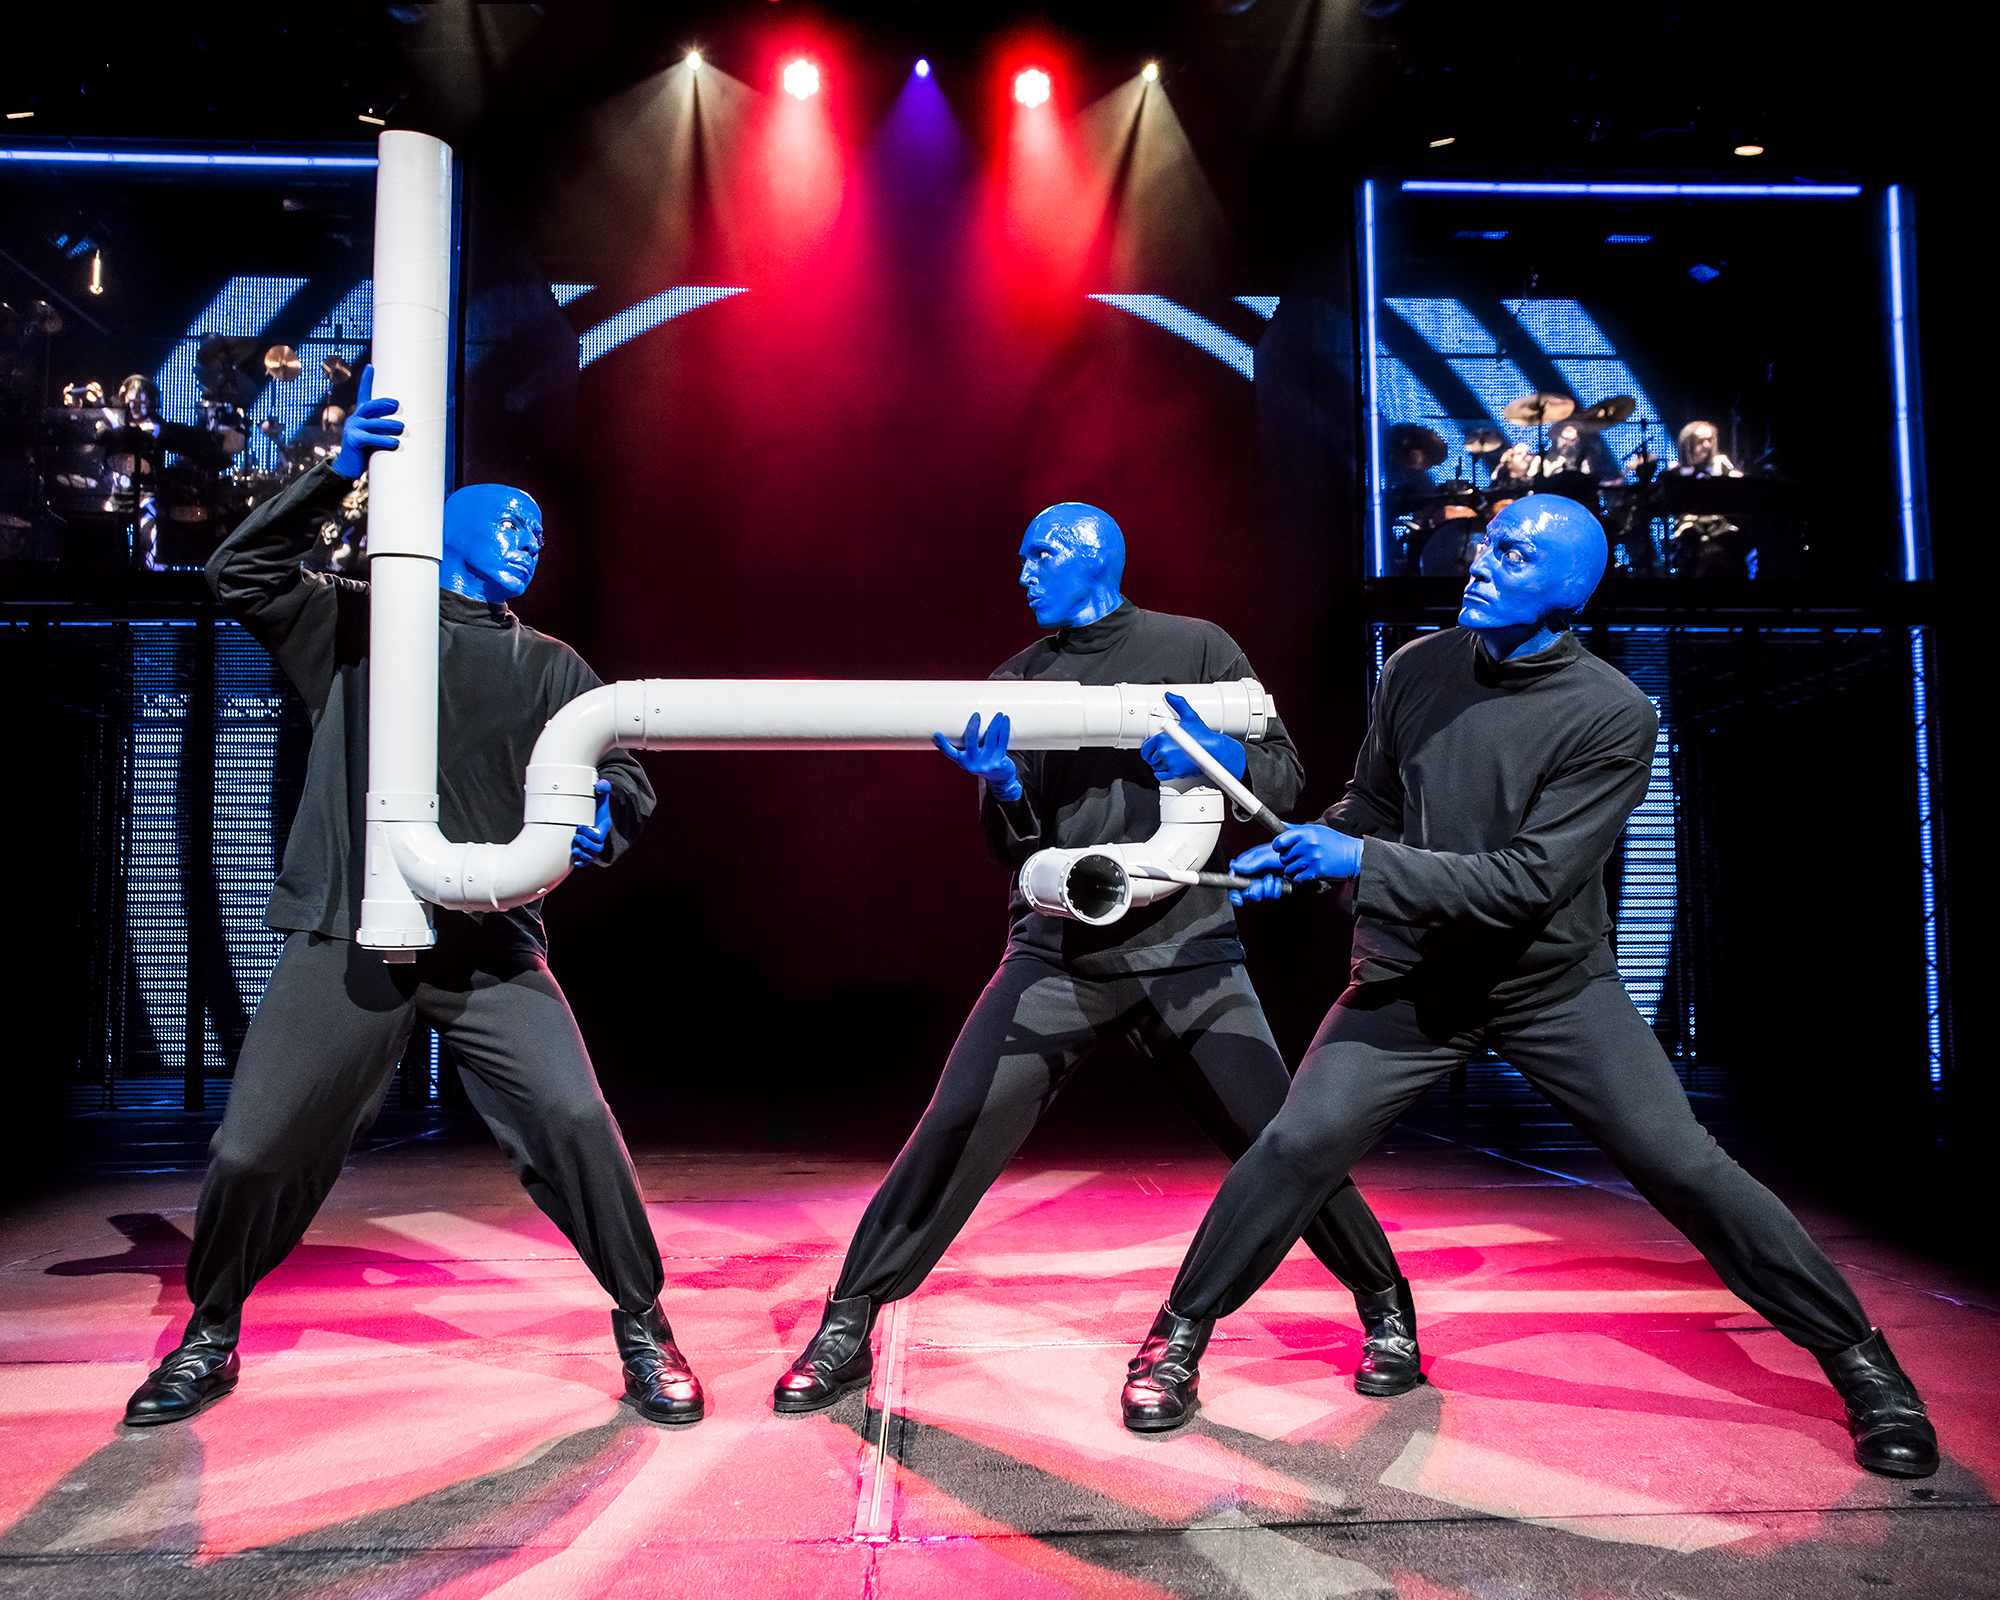 BlueMan_photo_Drumbone_2000x1600.jpg.jpg